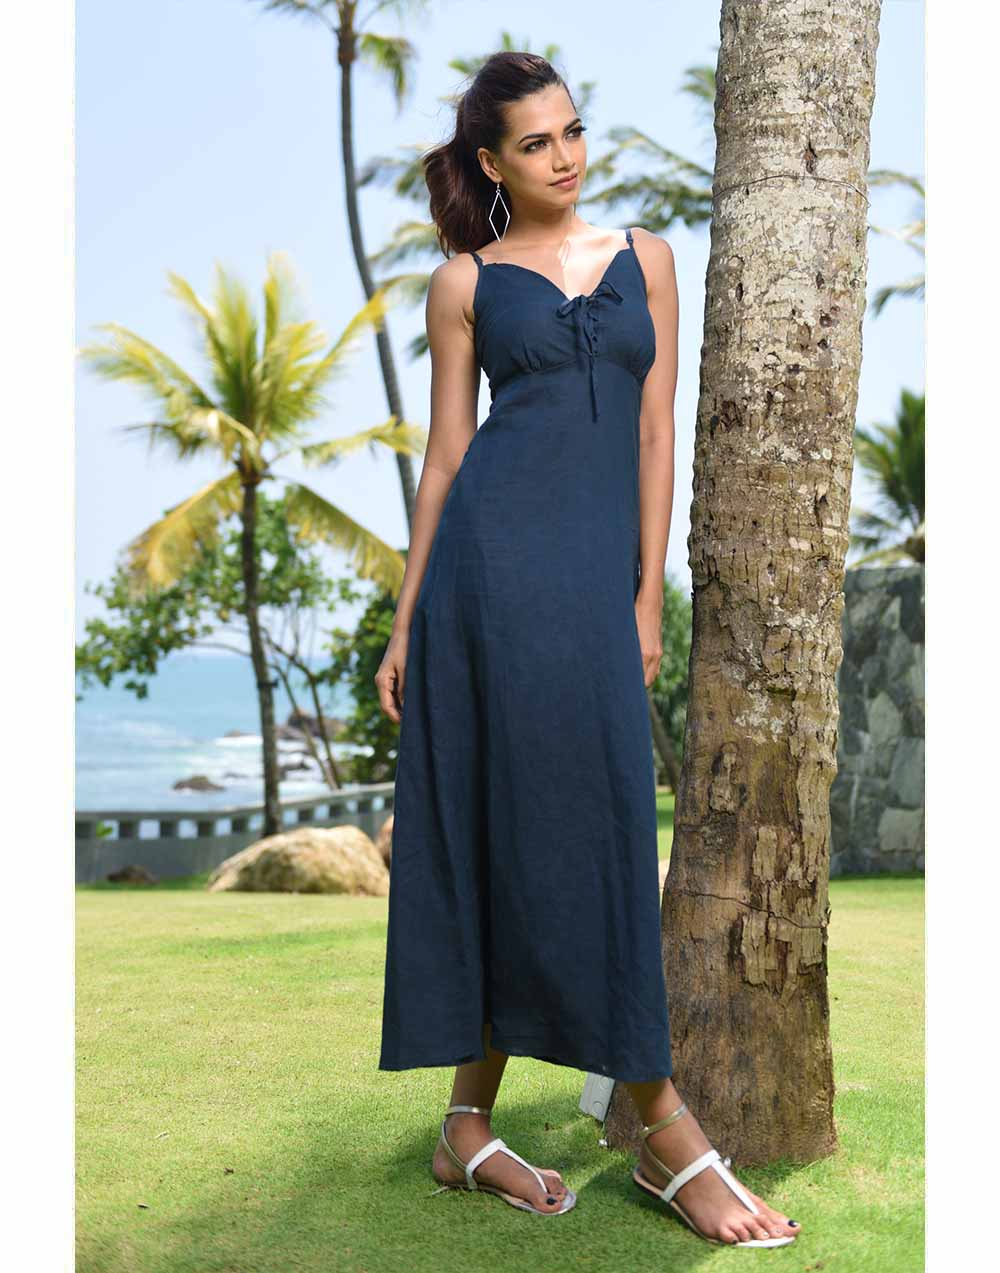 Free Casual Time Linen Dress